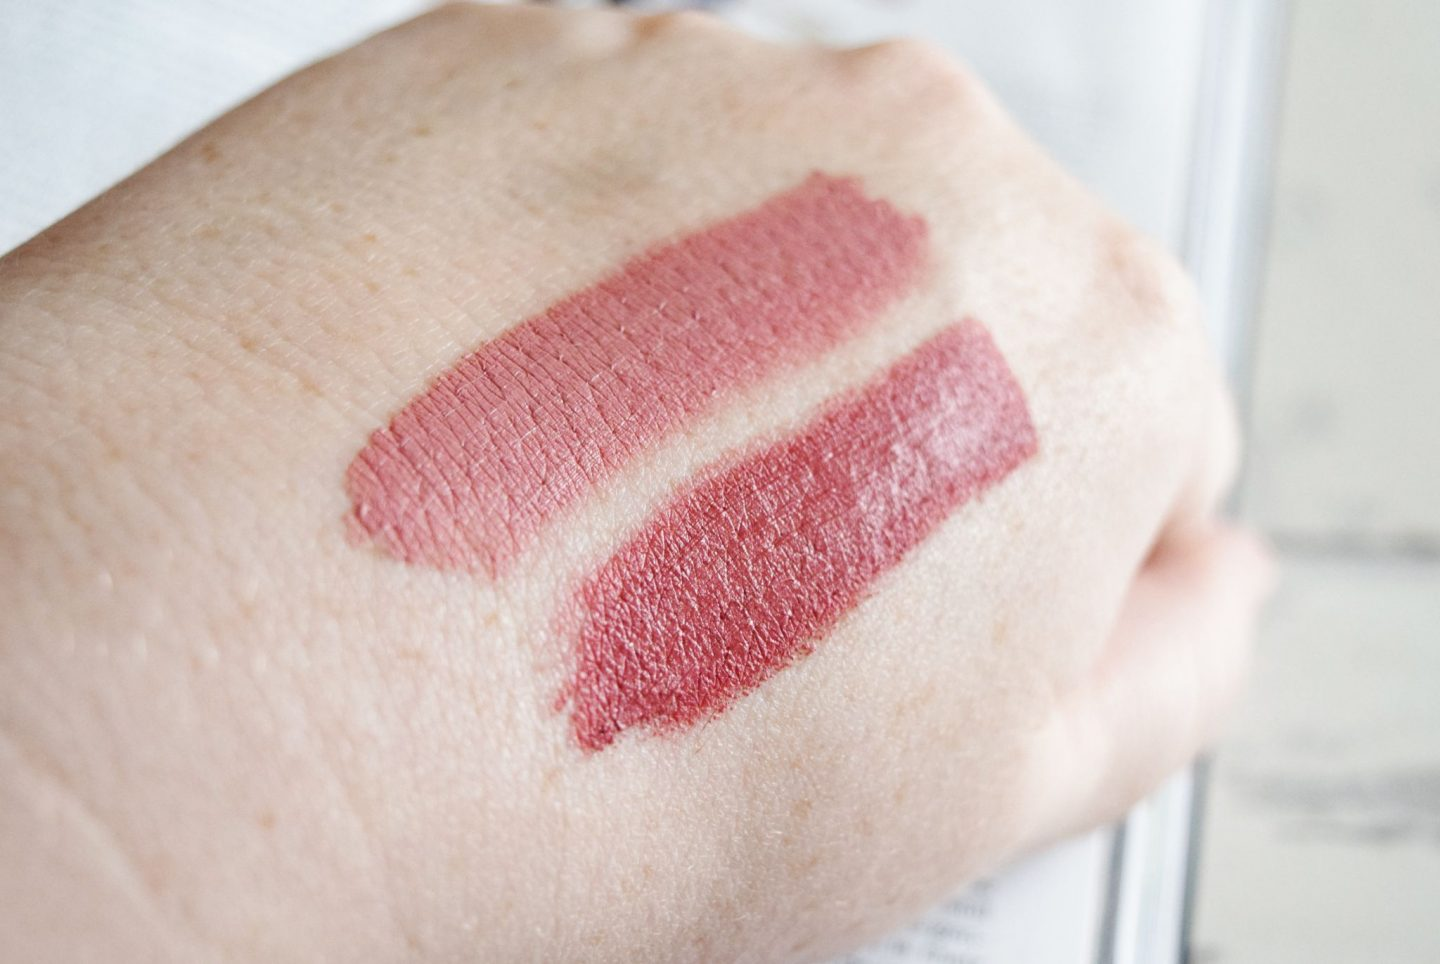 Charlotte Tilbury Hollywood Lips Matte Contour Liquid Lipstick swatches